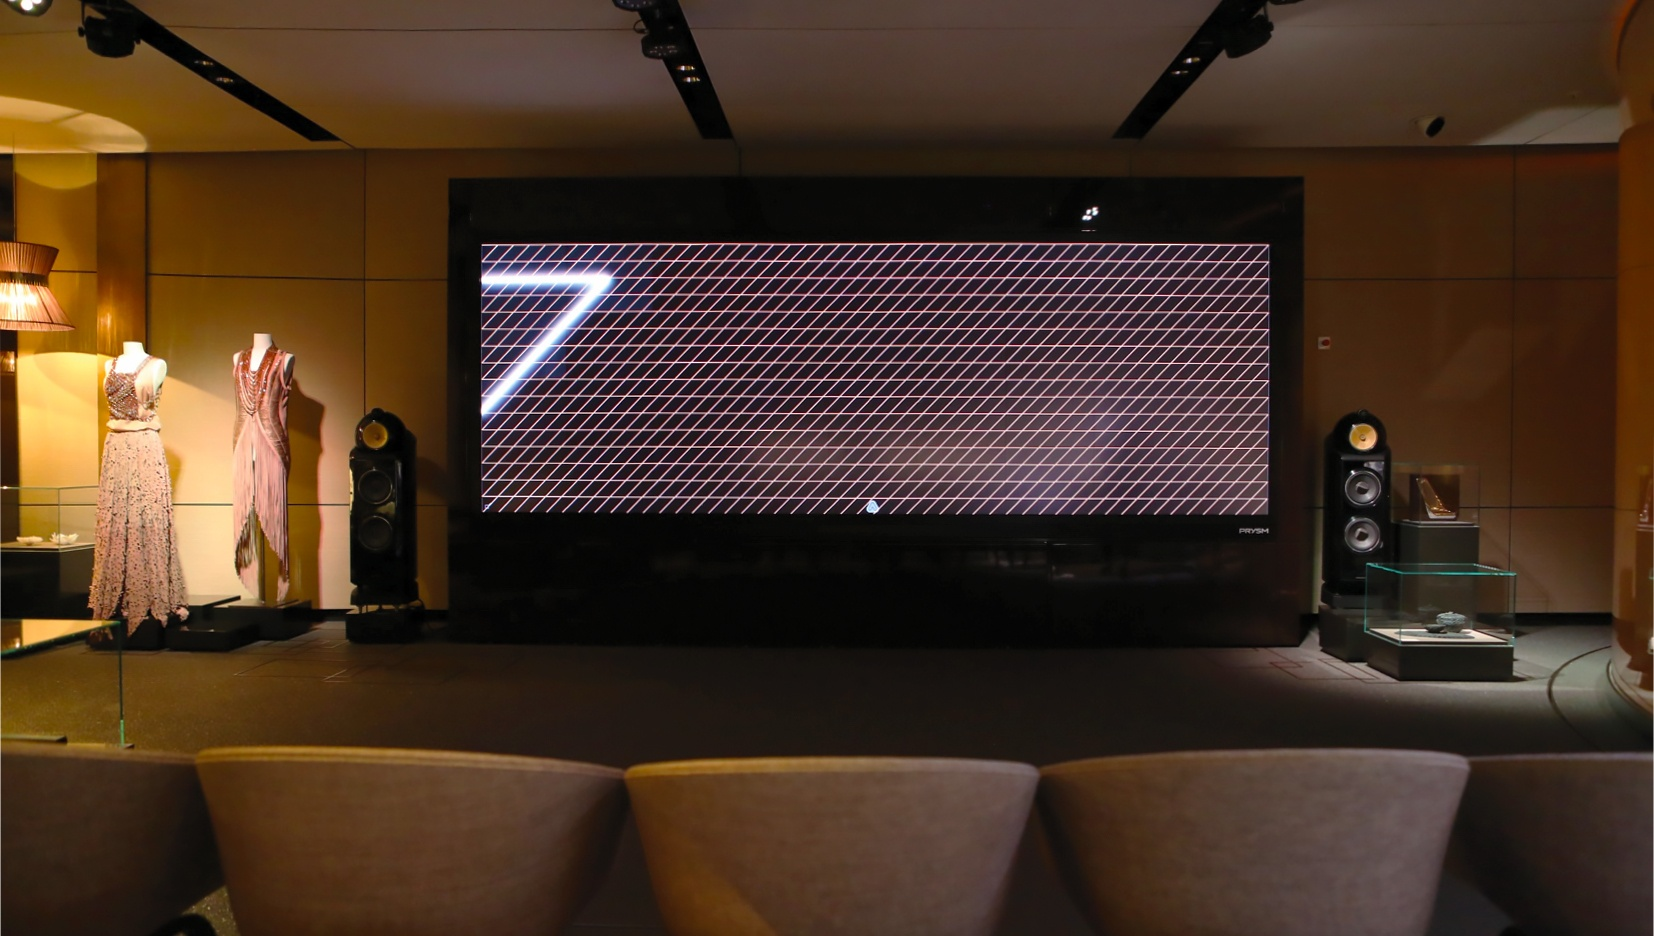 BMW Inspires 7 Series Customers With Prysm Cascade Video Wall